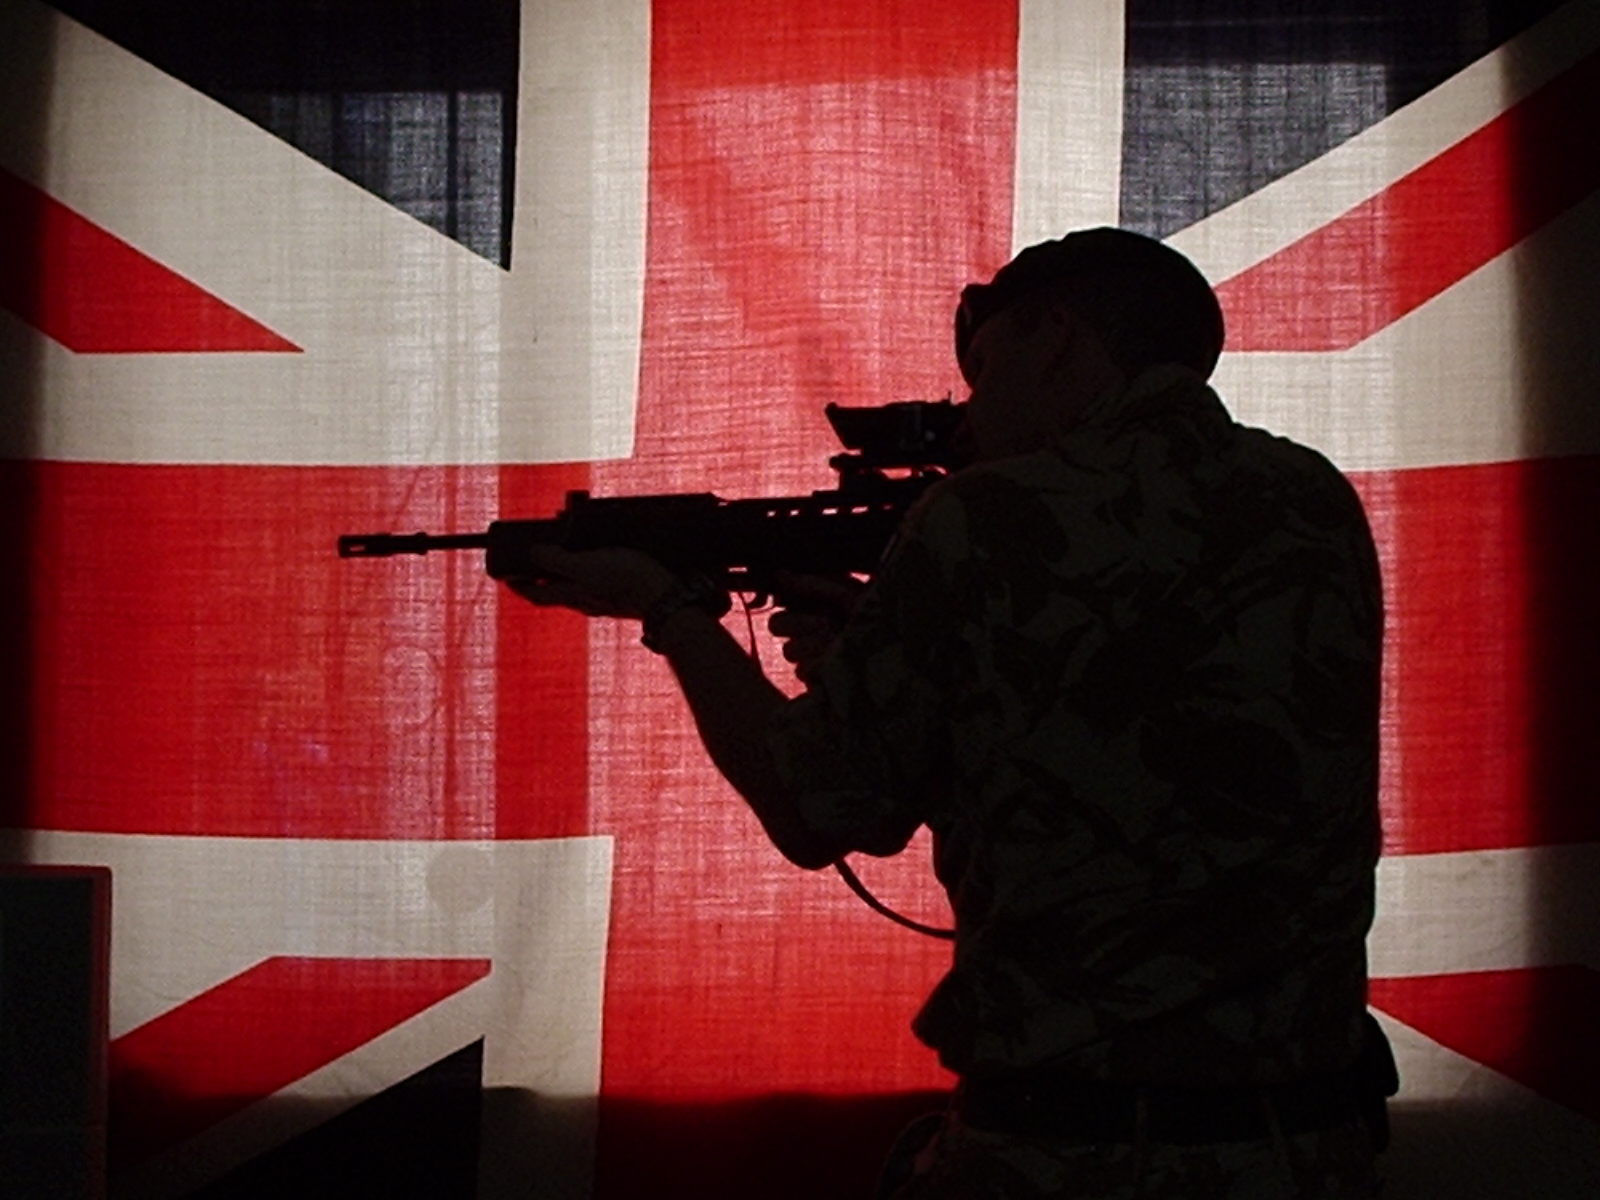 BBC News Bottom Up: British Soldier Rapes Six Year Old